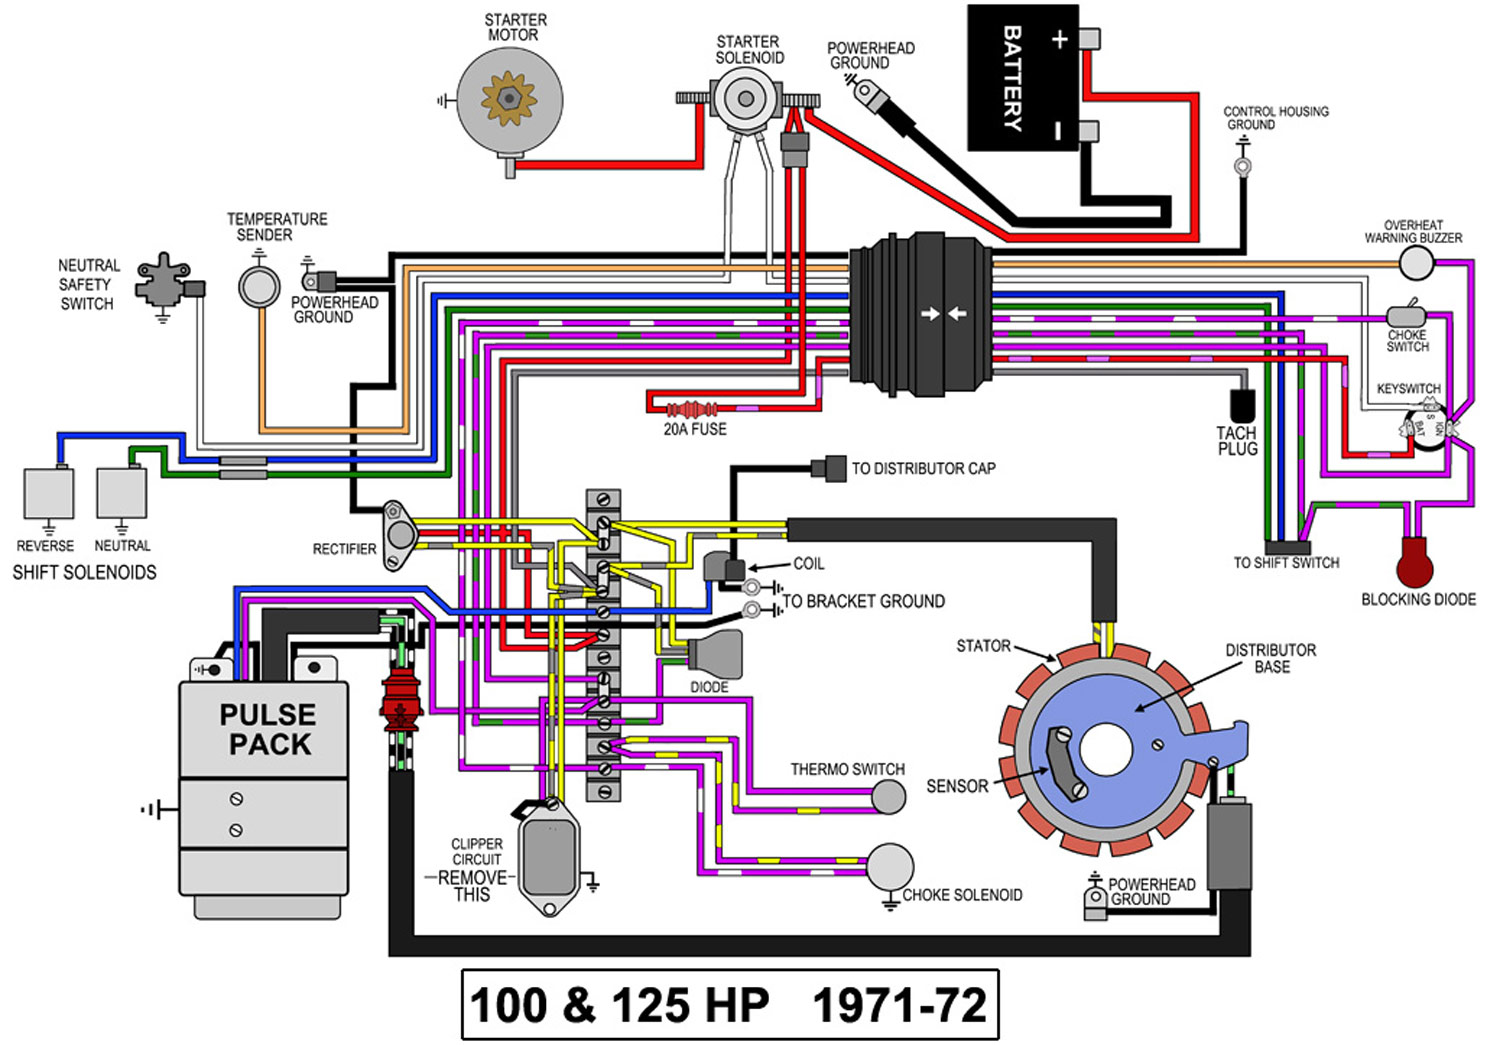 hight resolution of mastertech marine evinrude johnson outboard wiring diagrams wiringmastertech marine evinrude johnson outboard wiring diagrams